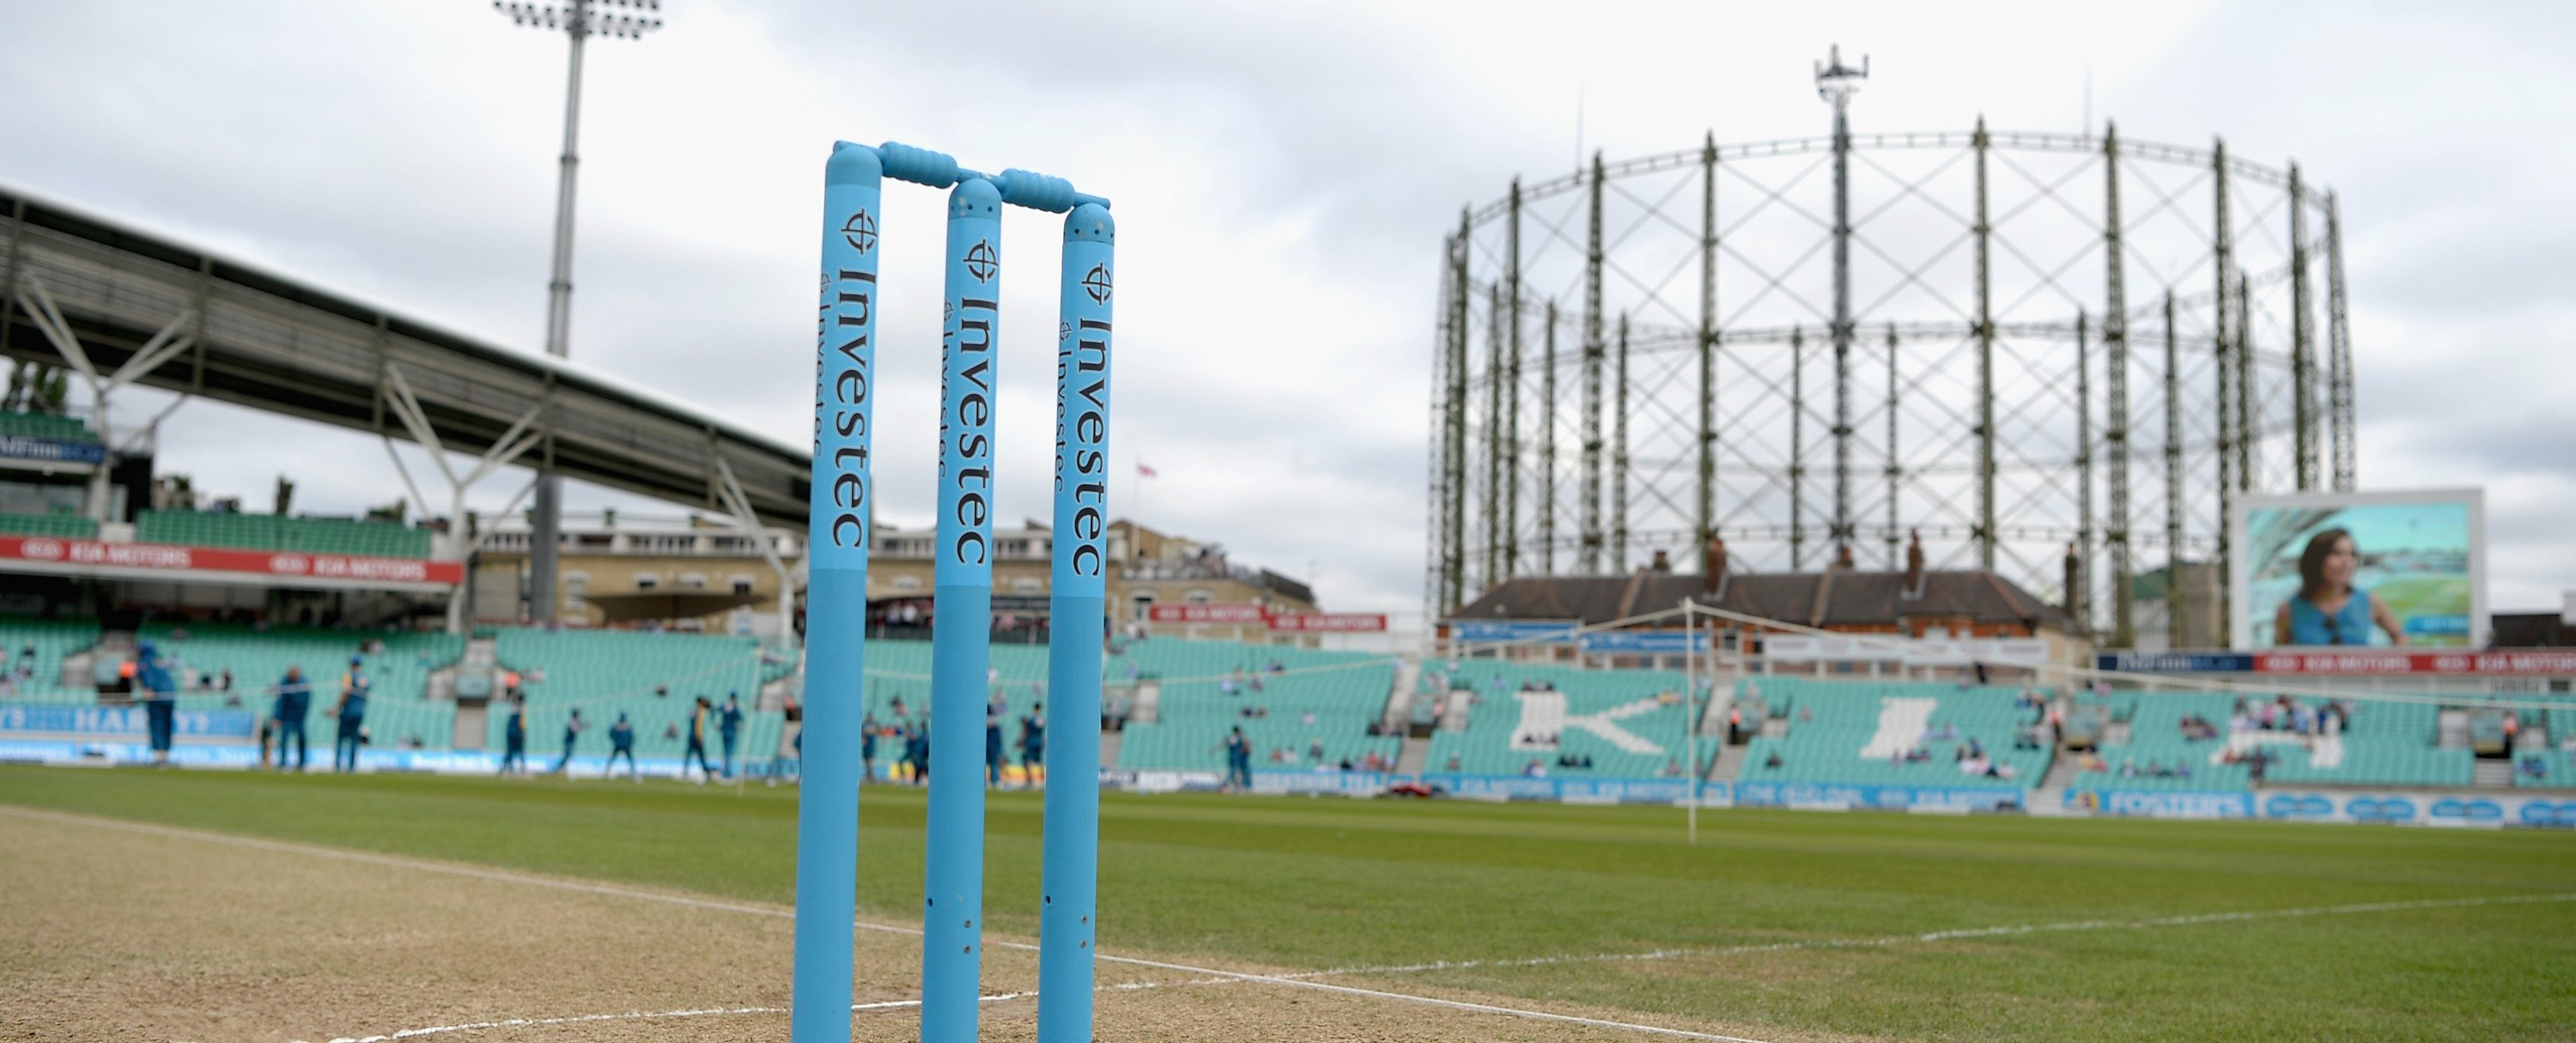 Win Tickets To England V South Africa At The Oval